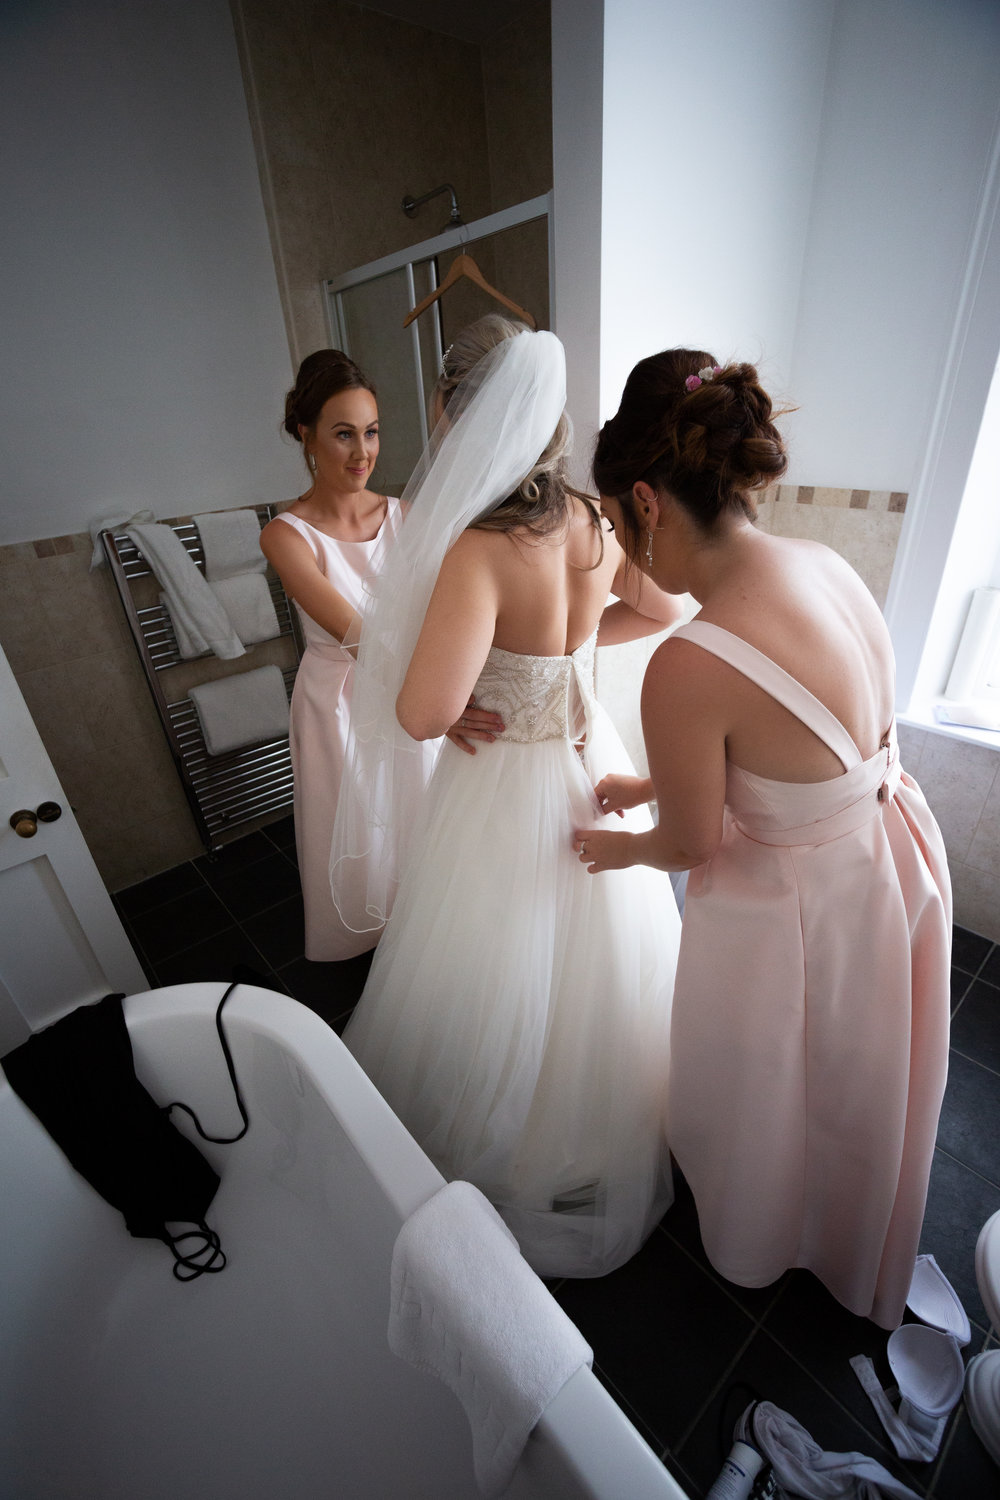 wedding-lea-cooper-photography-willenhall-west-midlands-wolverhampton-dudley-birmingham-uk-marriage-hadley-park-east-telford-wedding-dress.jpg